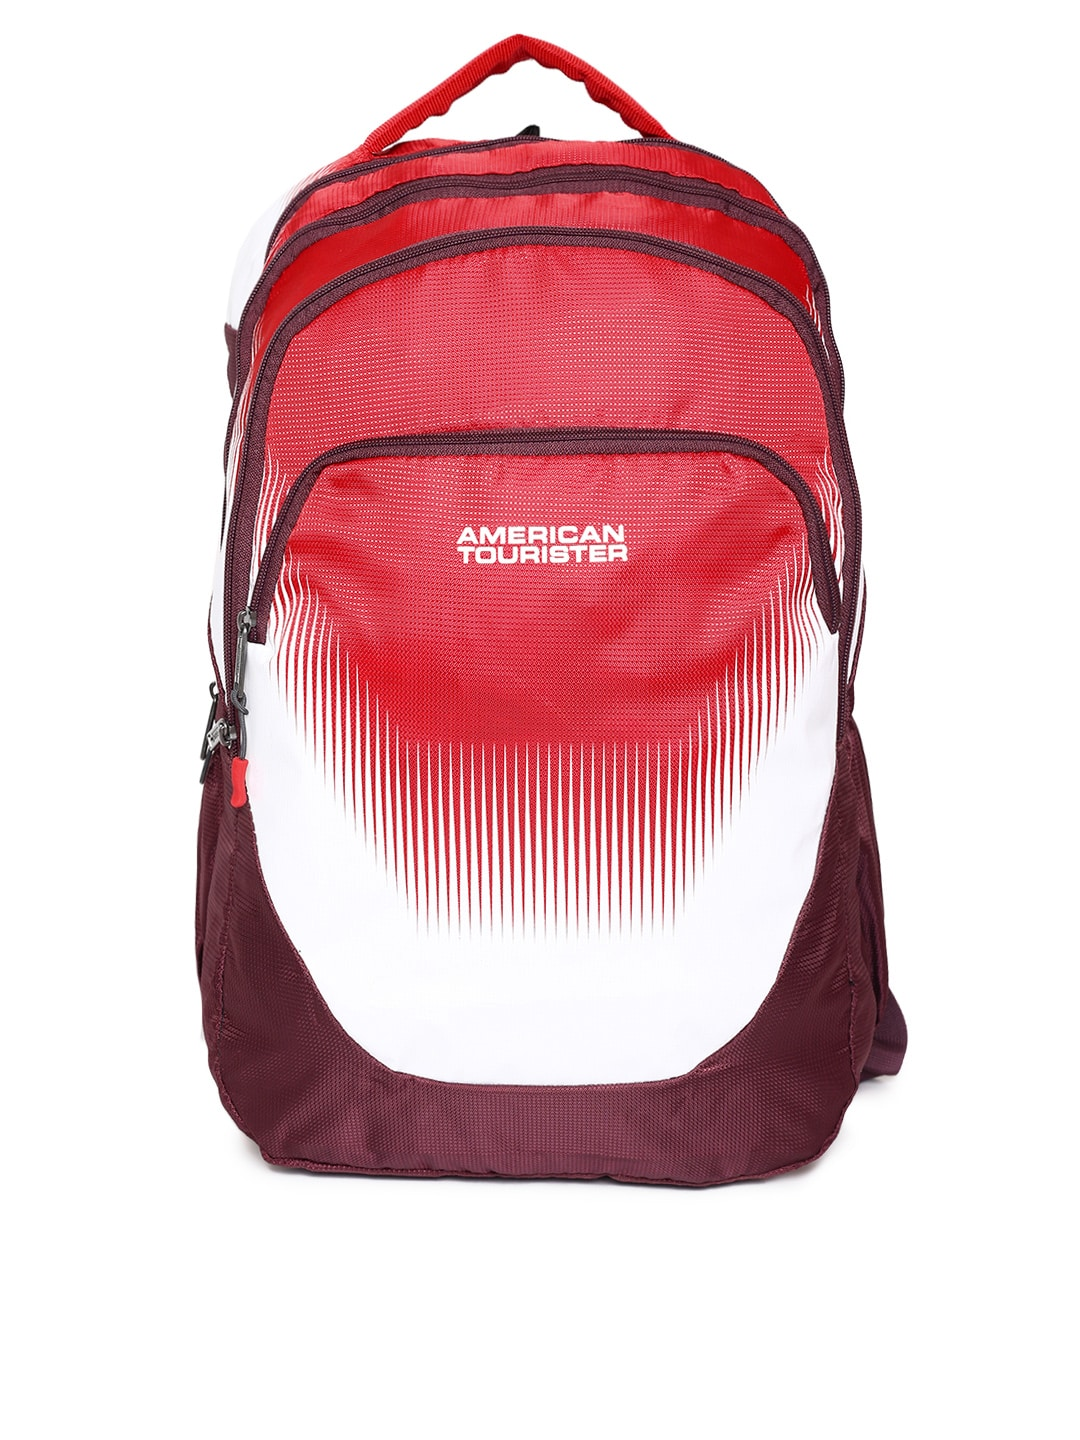 American Tourister Backpacks - Buy American Tourister Backpacks Online in  India efe5a71096